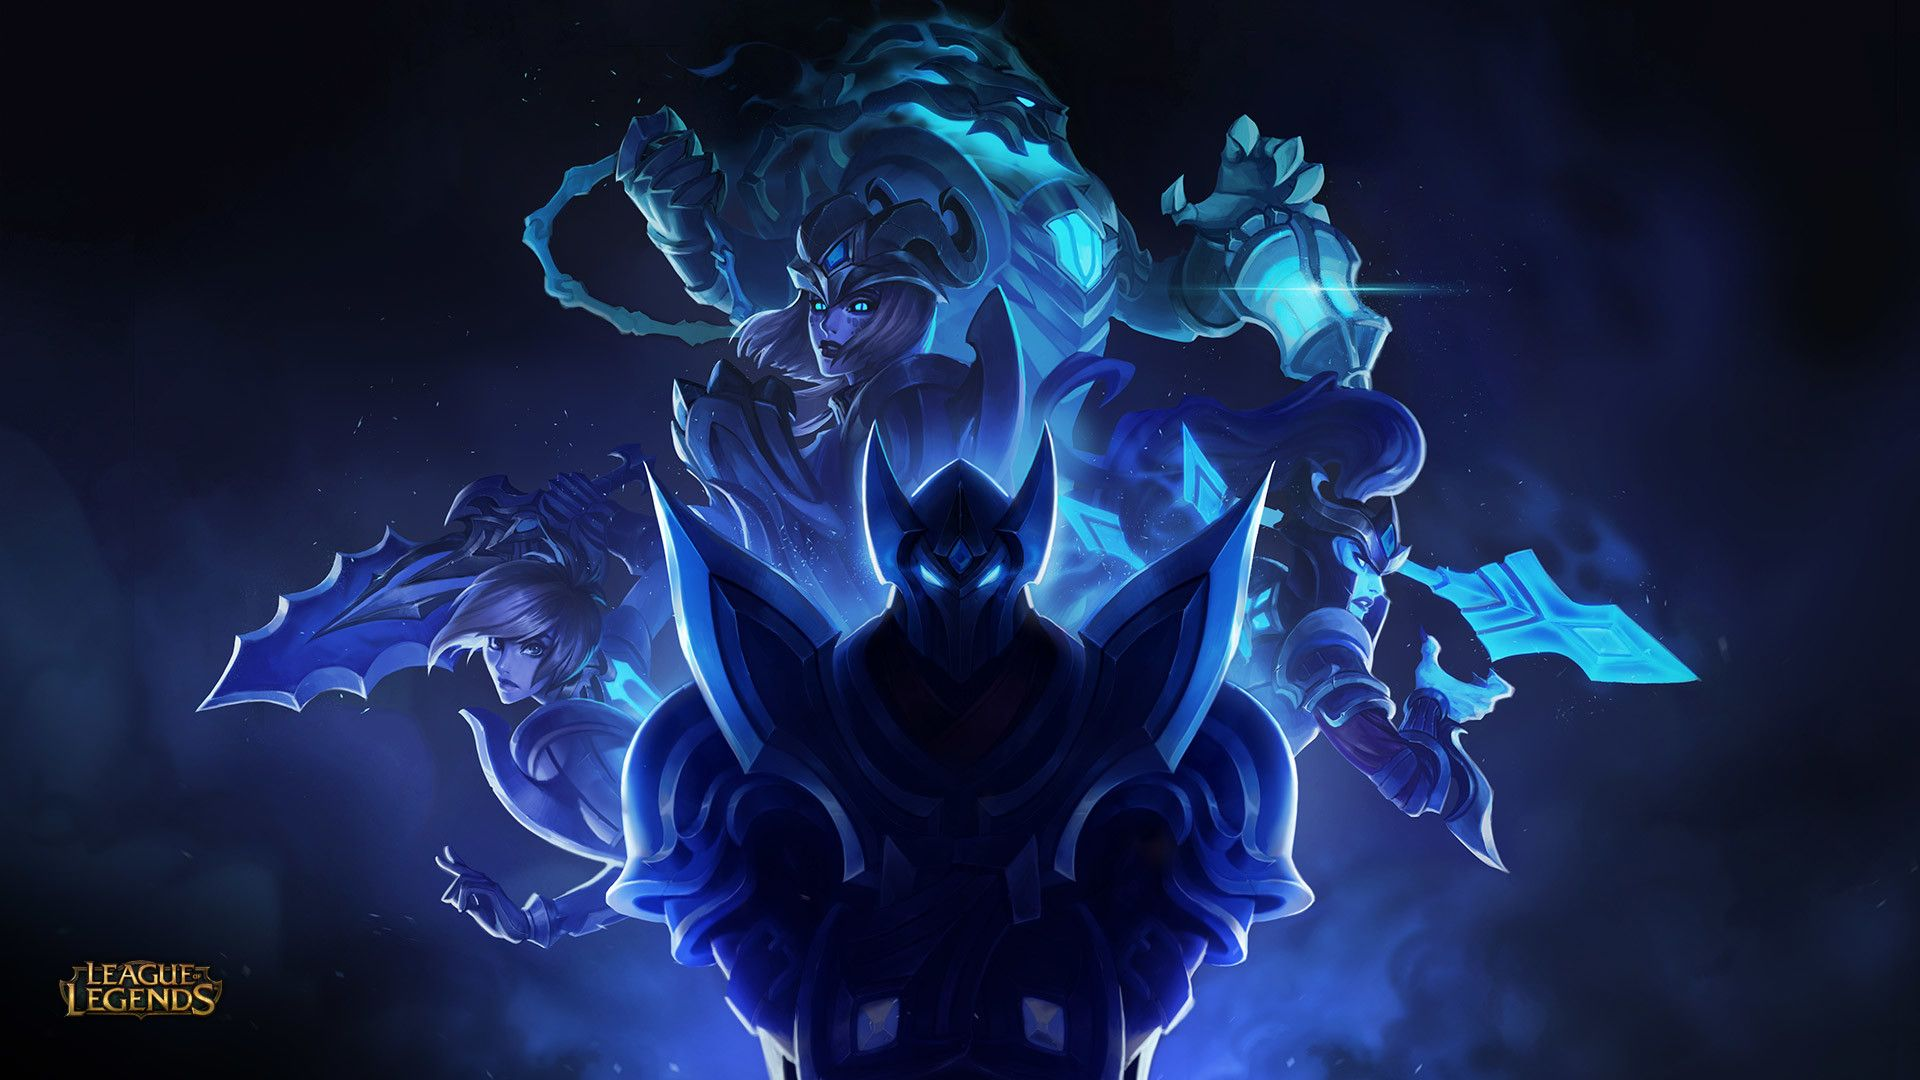 League Of Legends Wallpapers 1920x1080 Posted By John Mercado